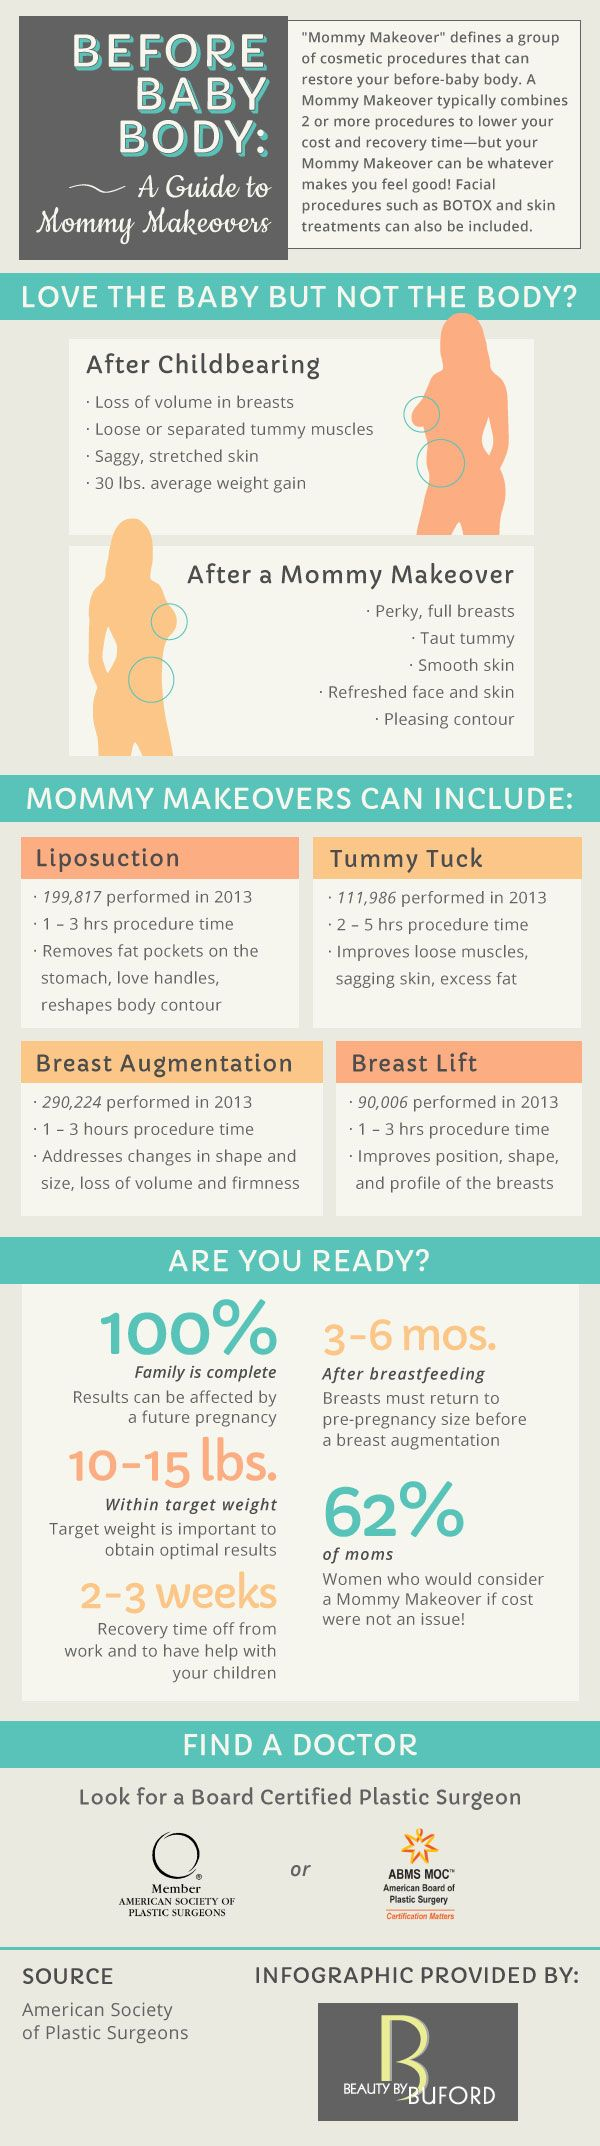 """Mommy Makeover"" defines a group of cosmetic procedures that can restore your before-baby body. A Mommy Makeover typically combines 2 or more procedures to lower your cost and recovery time--but your Mommy Makeover can be whatever makes you feel good! Facial procedures such as BOTOX and skin treatments can also be included. If you live in the Ohio area or have the means to travel for surgery we are the place FOR YOU! Visit http://www.clevelandcosmeticsurgery.com for info on what we offer."